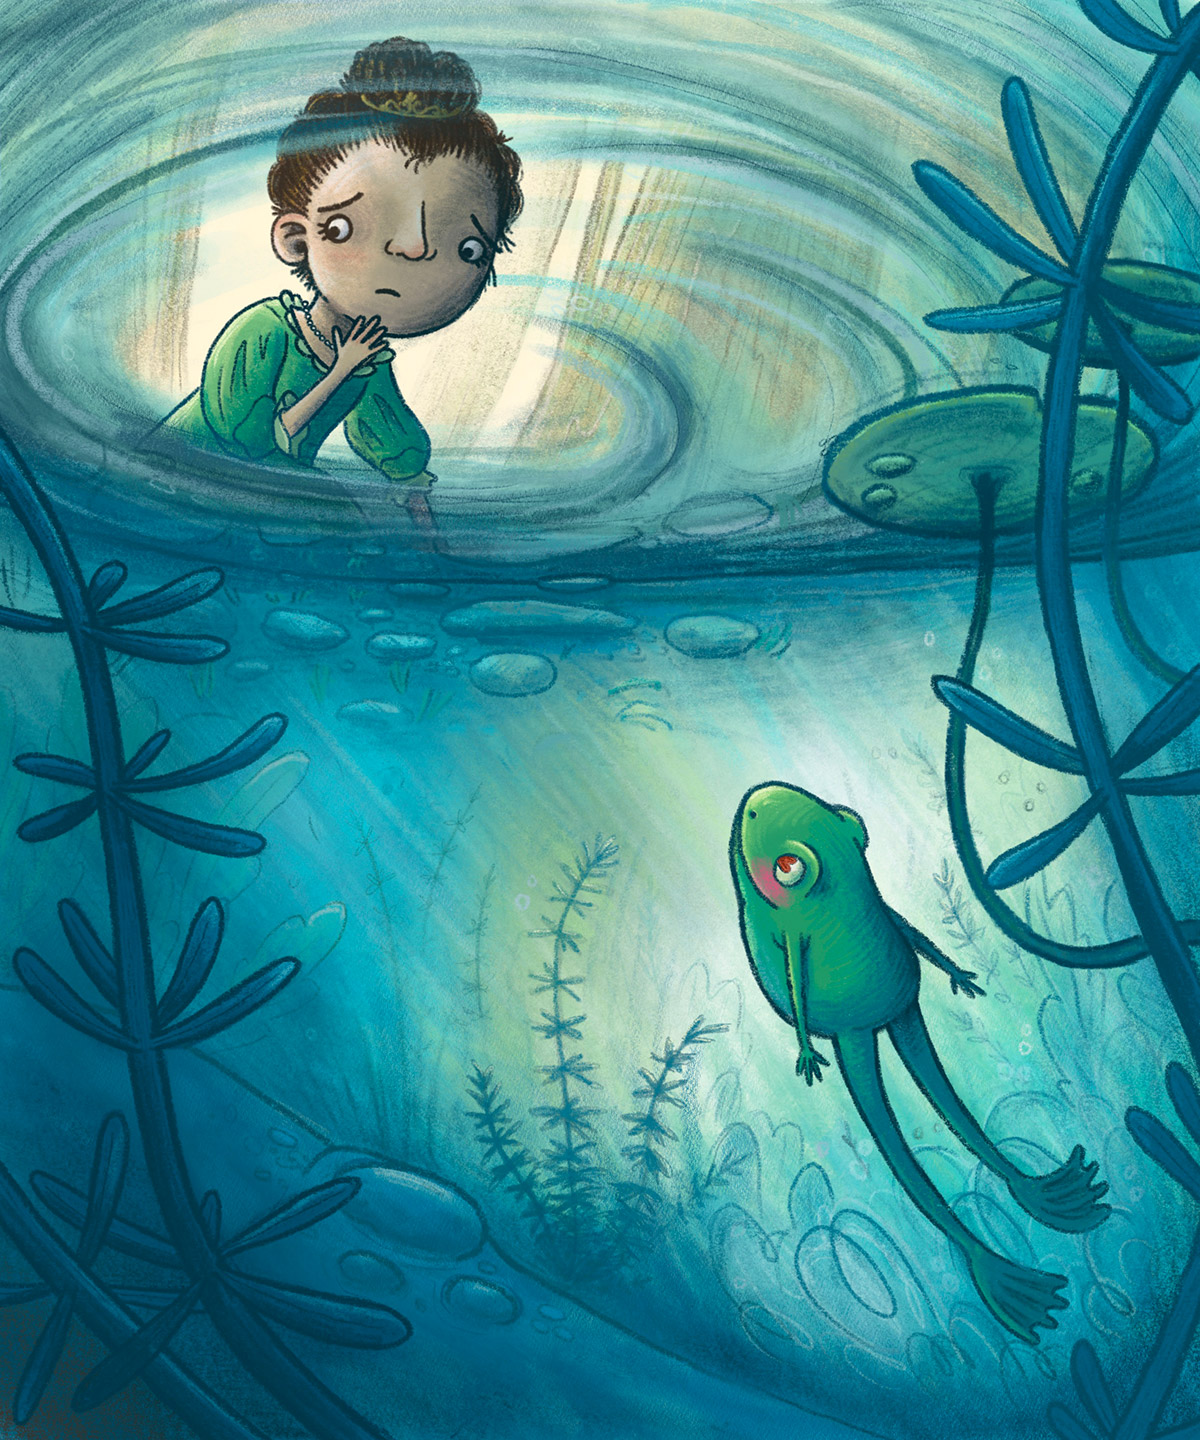 whimsical children's illustration of a princess looking into a pond with a frog in it